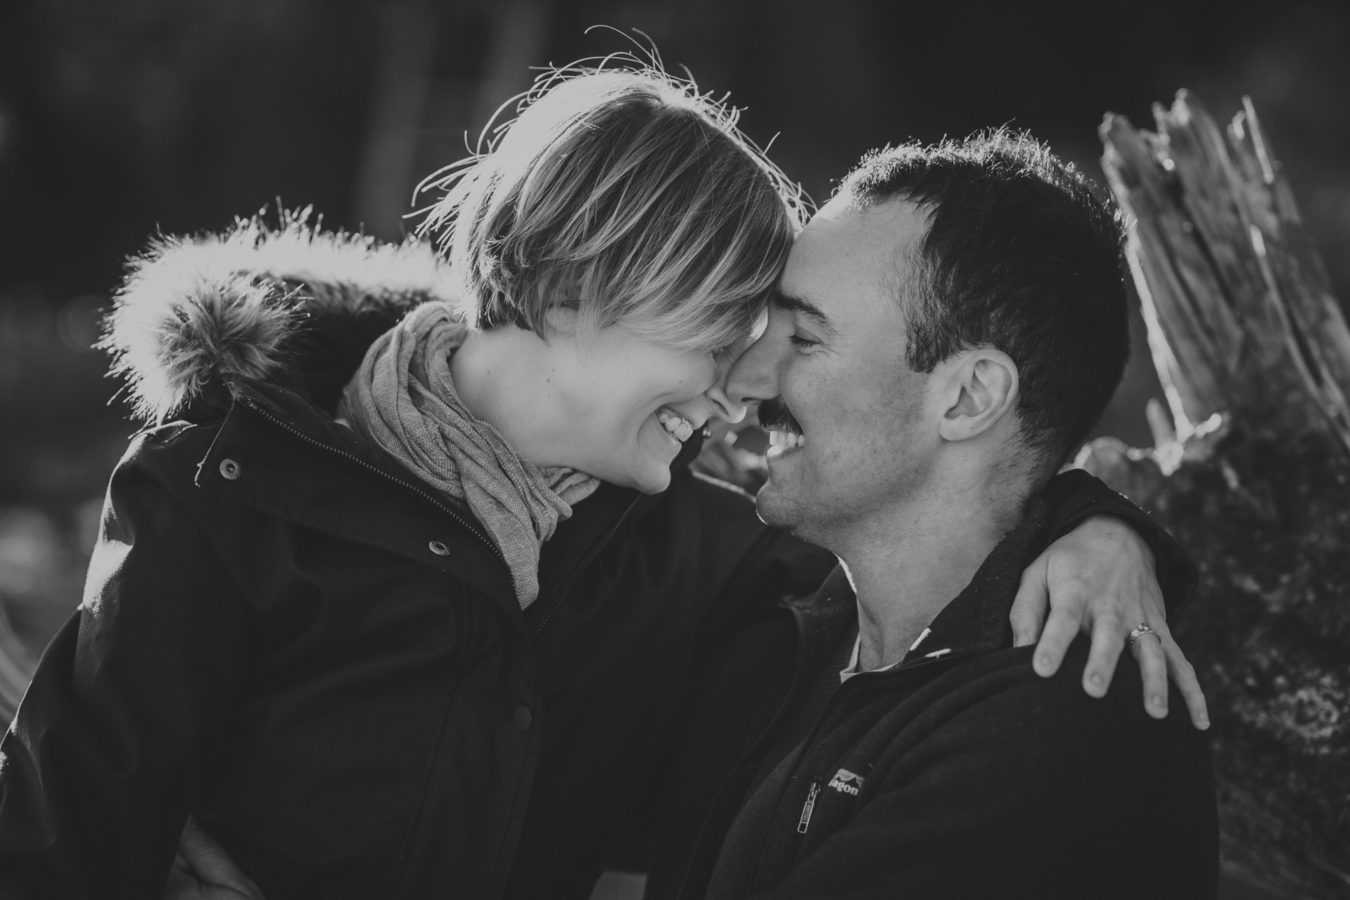 close up of a man and woman laughing with their foreheads together